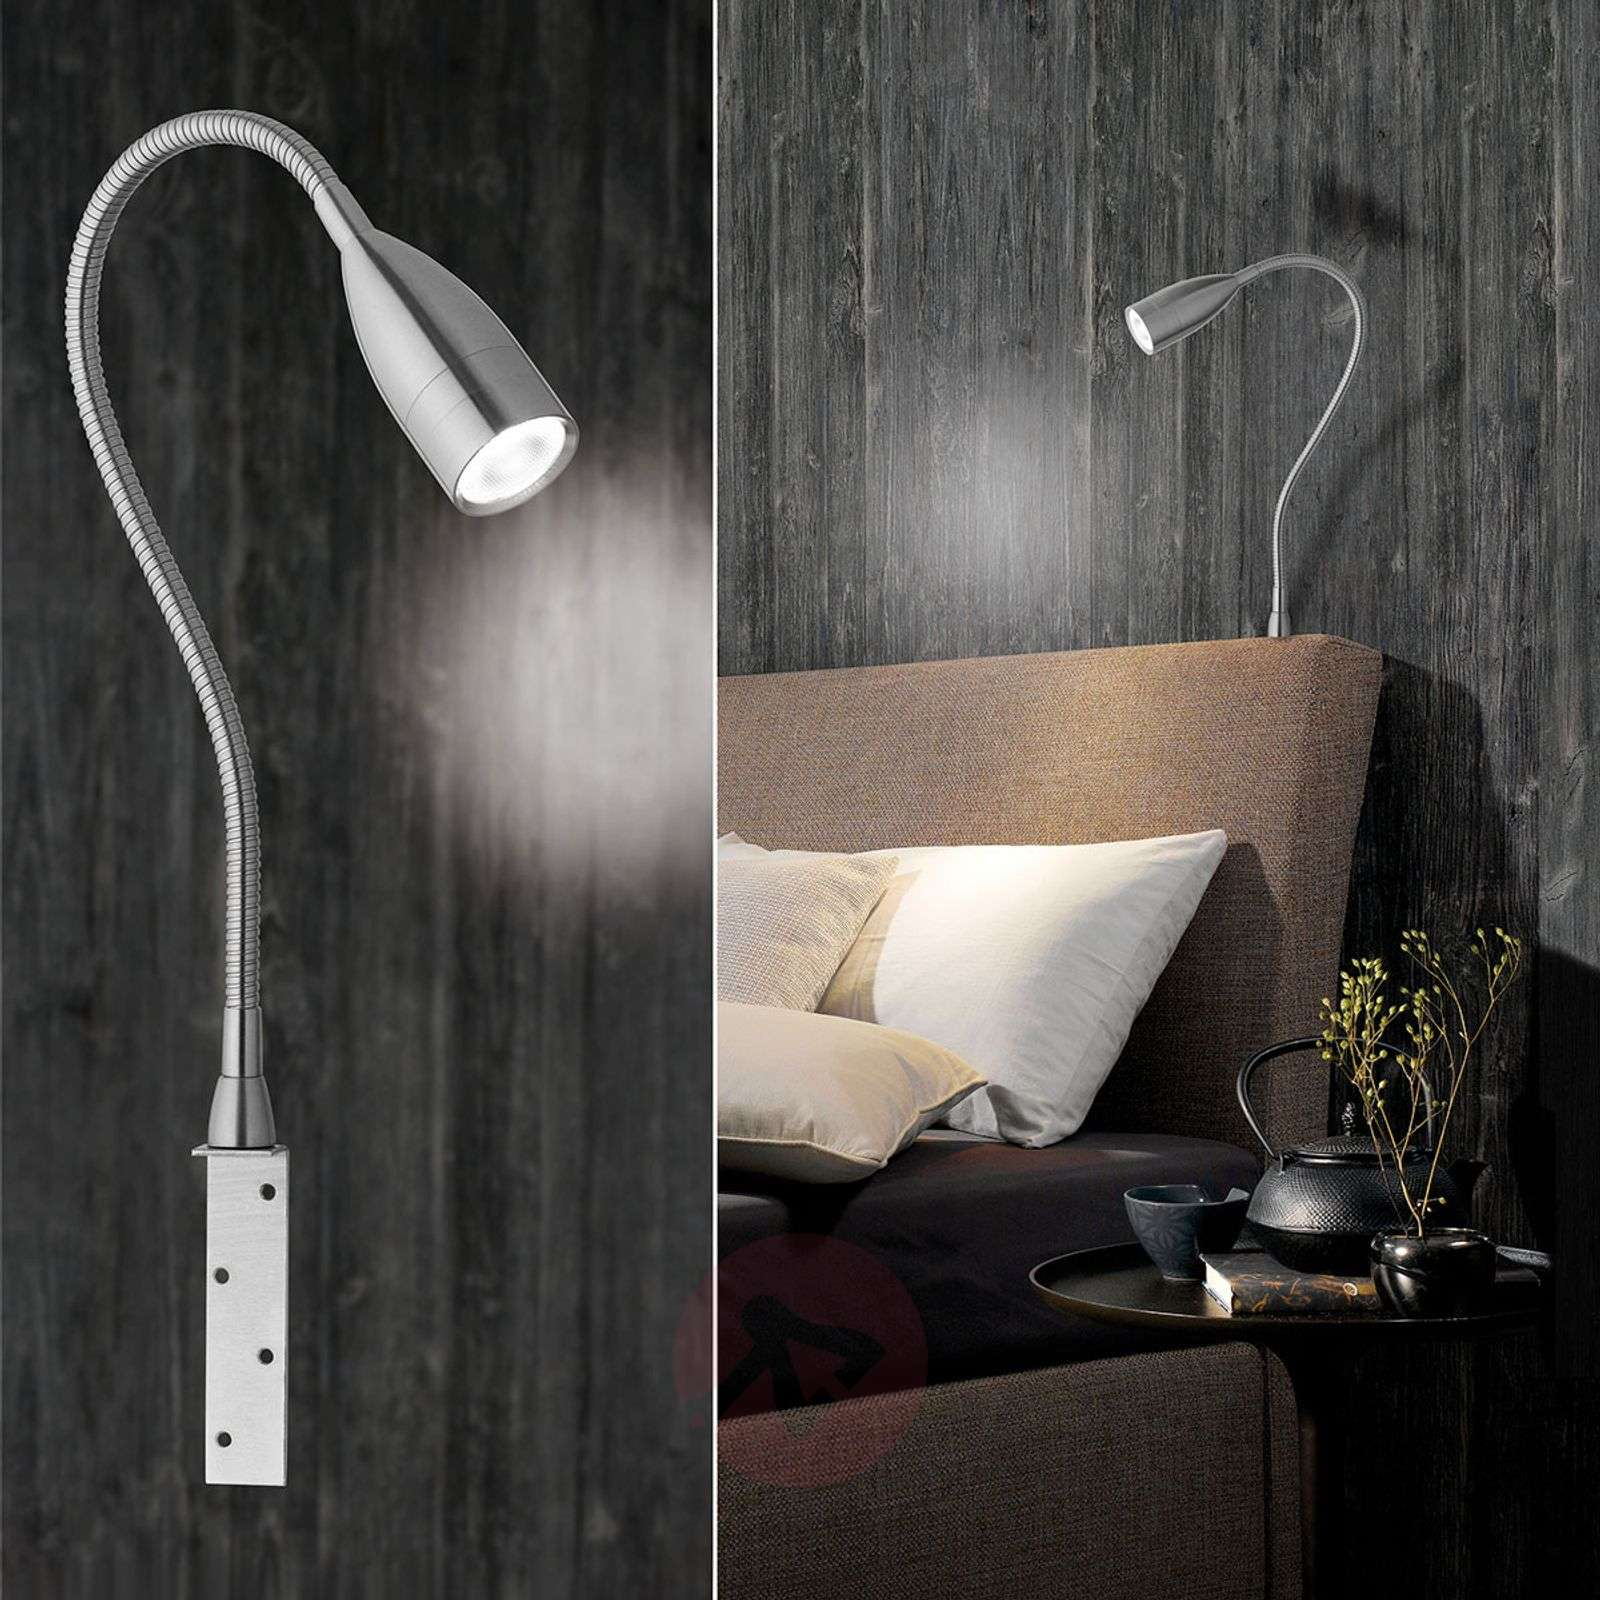 Applique LED Sten dimmable par commande gestuelle-4581366-05